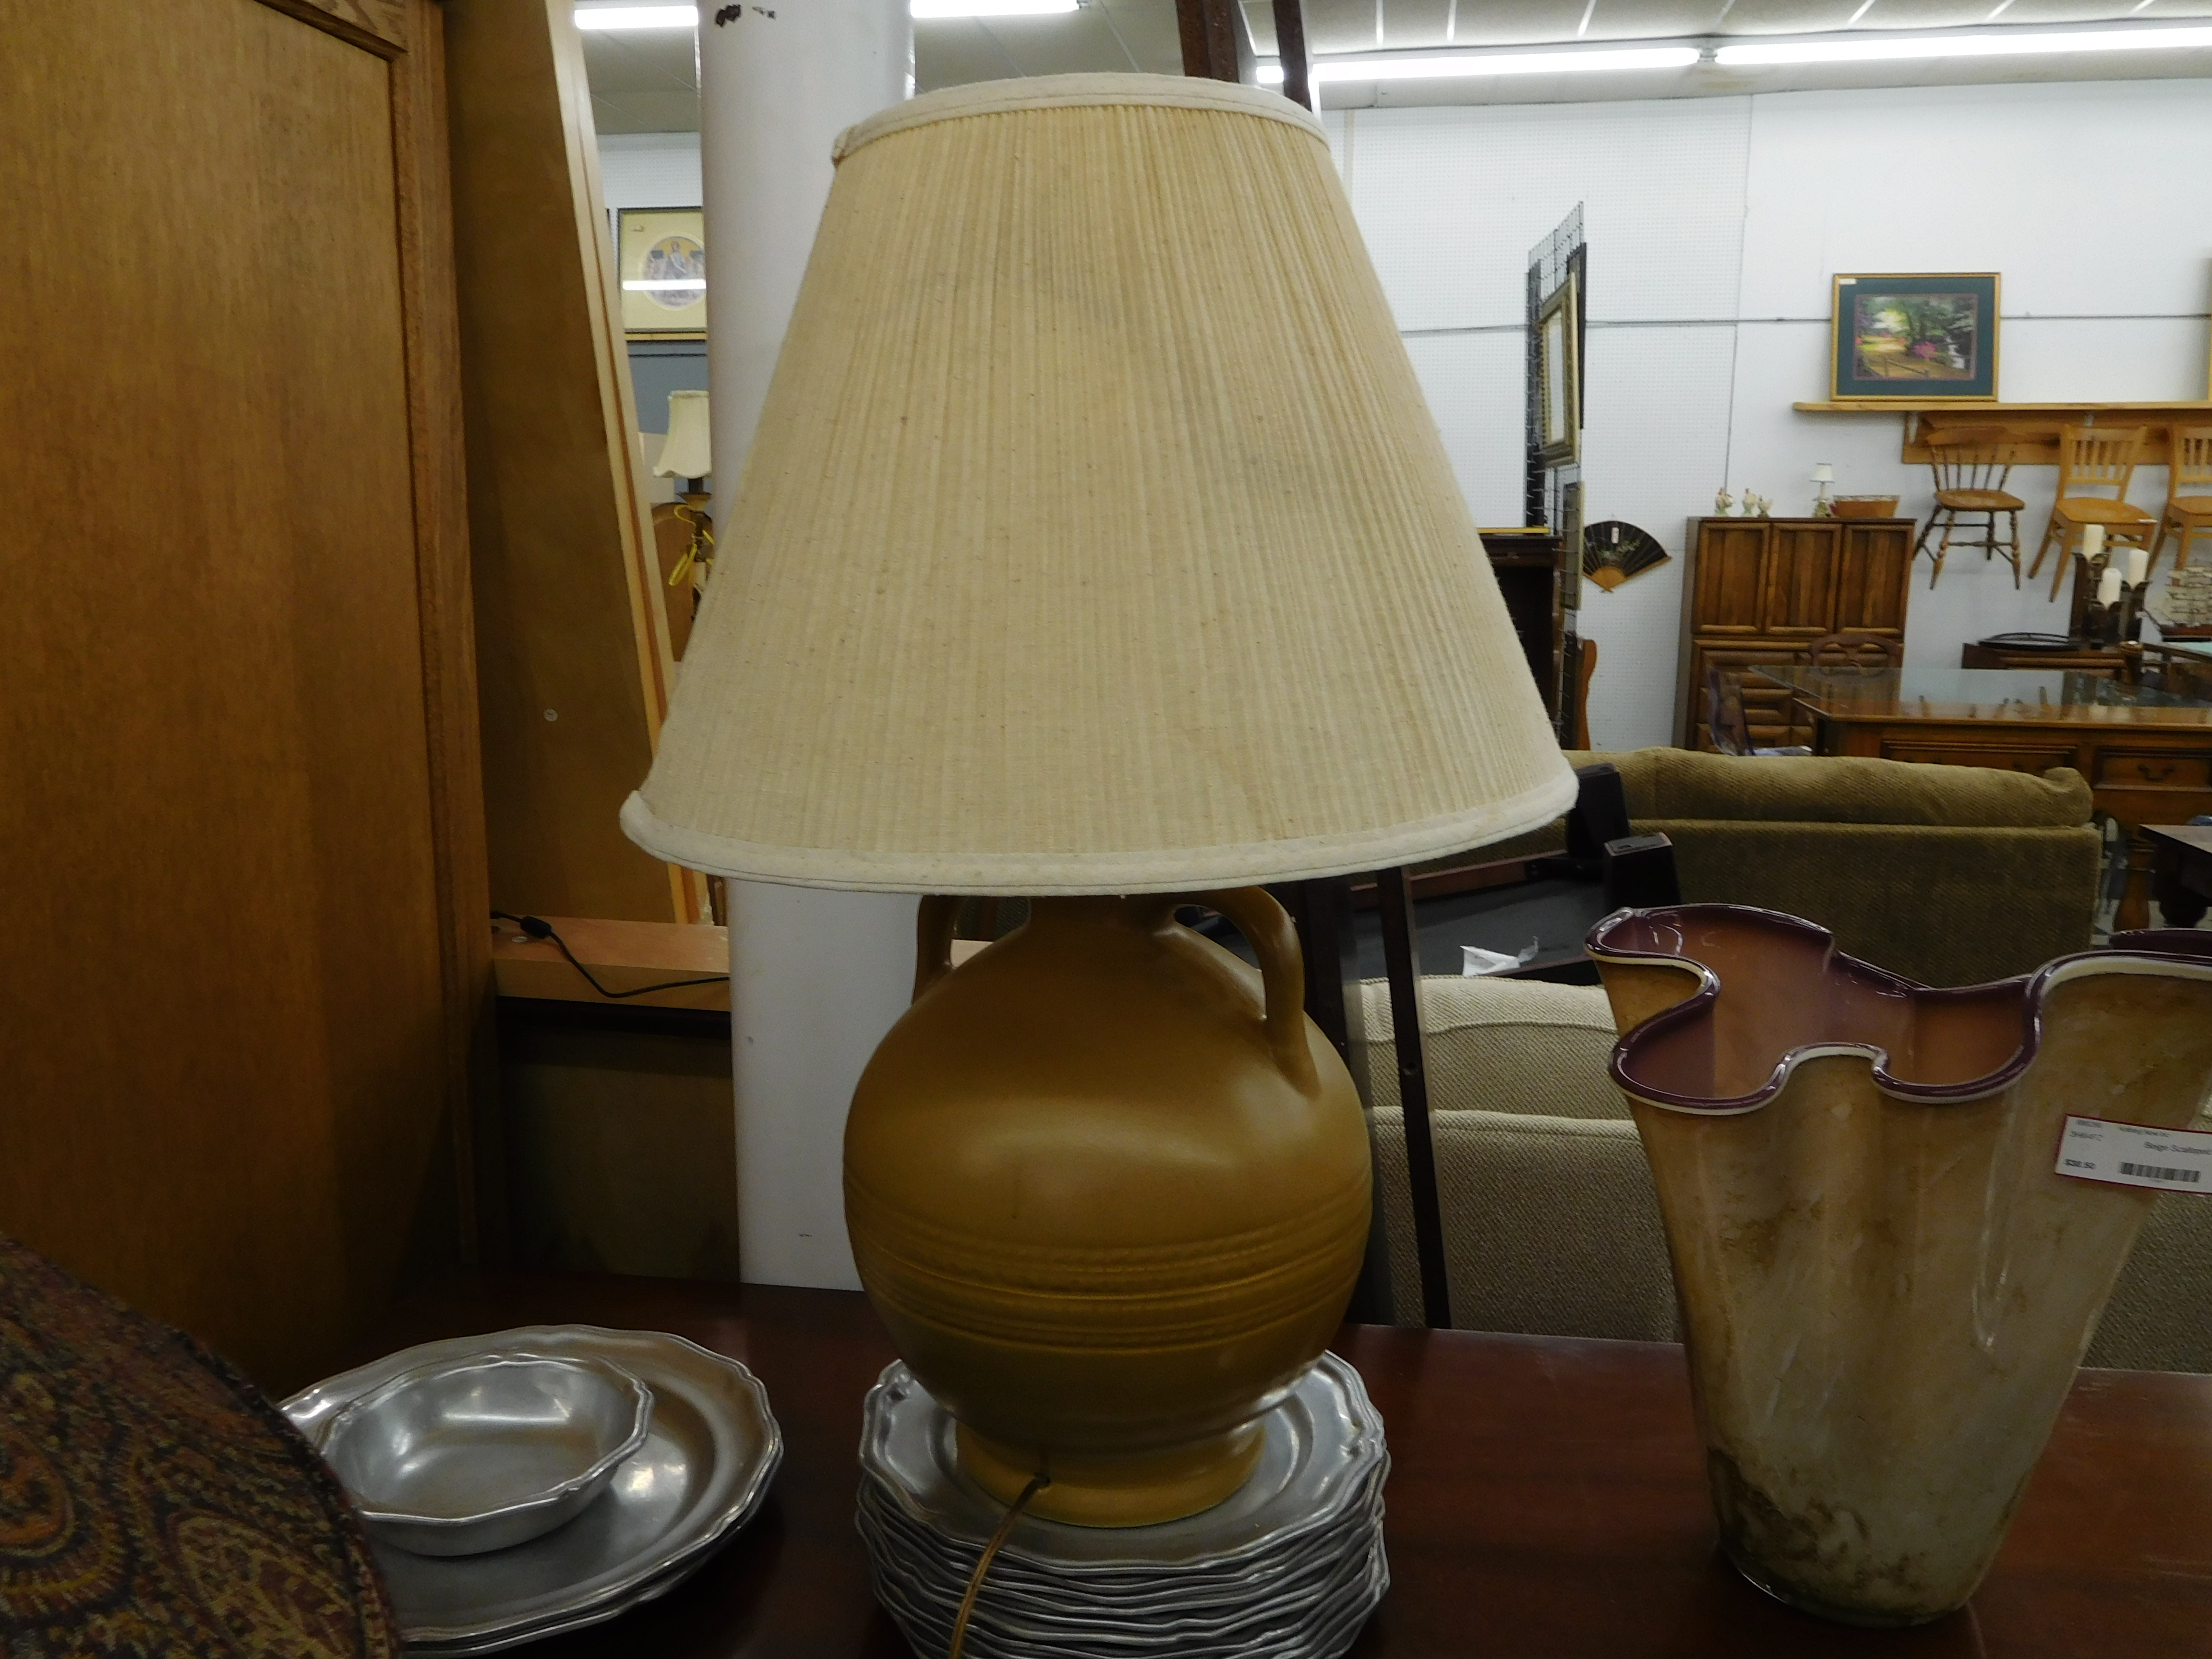 Ethan Allen Table Lamp with